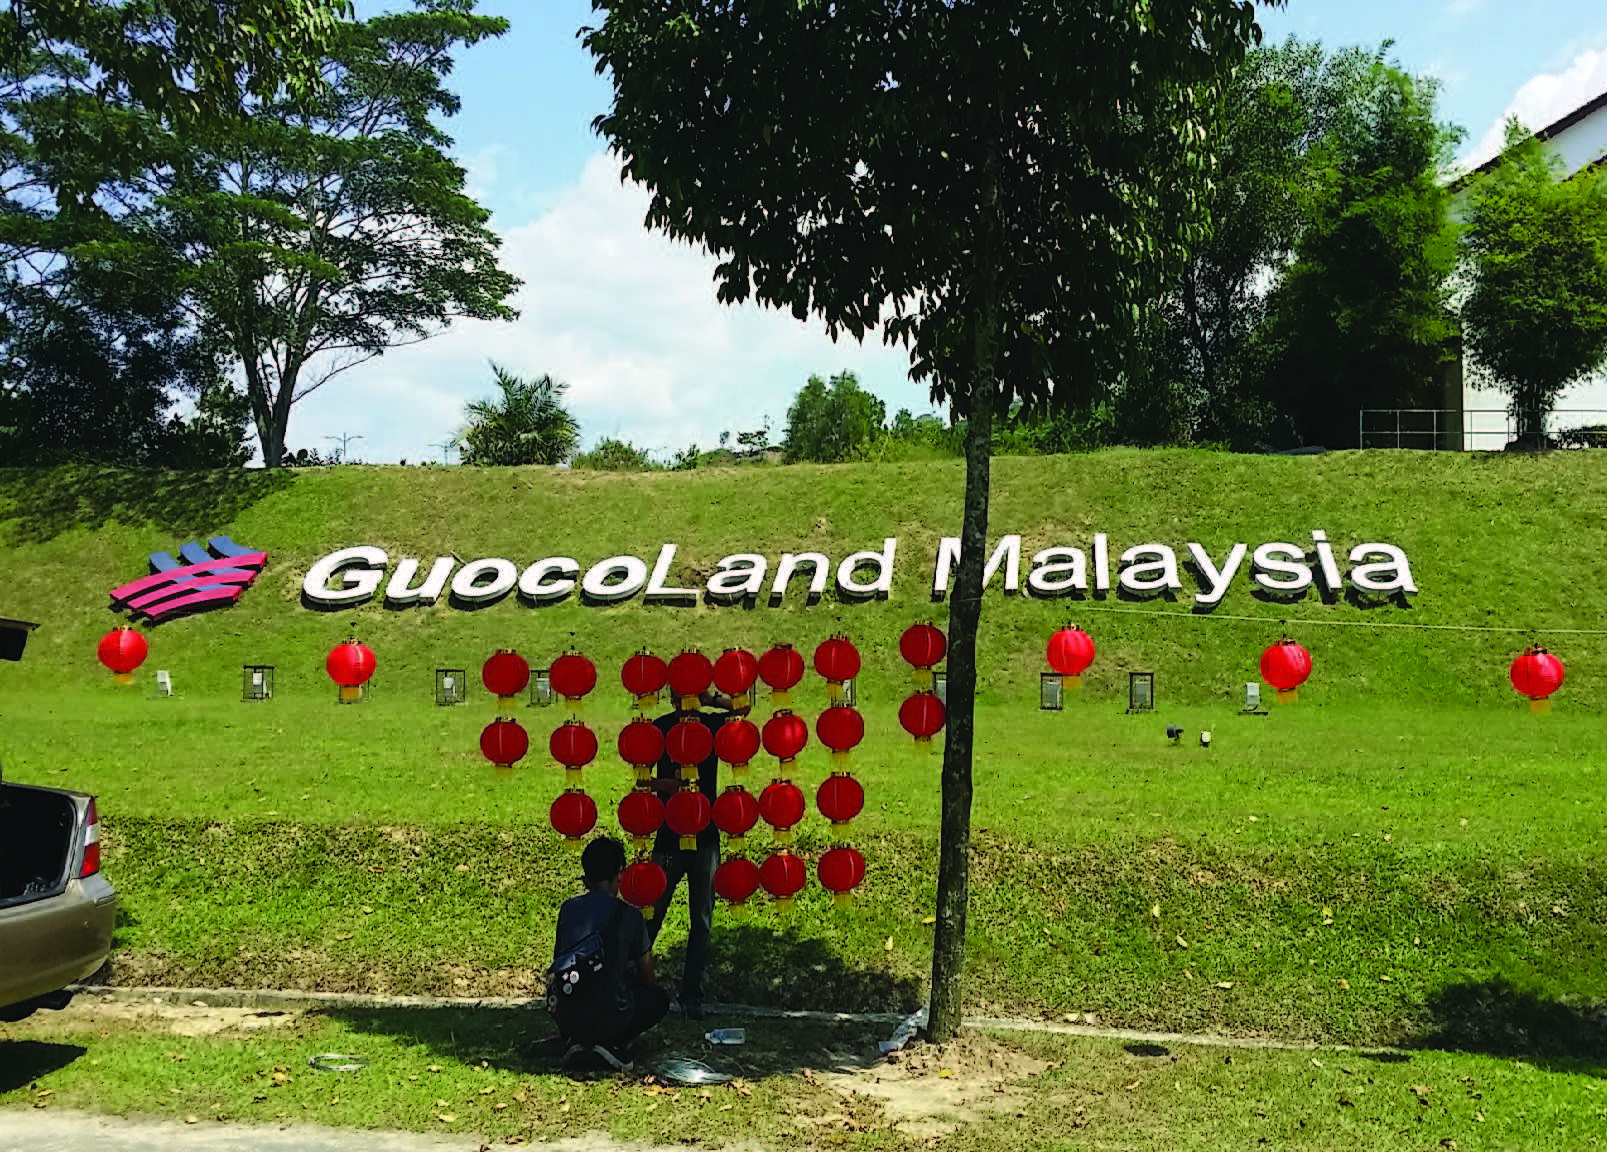 Guocoland Malaysia Hill Sign